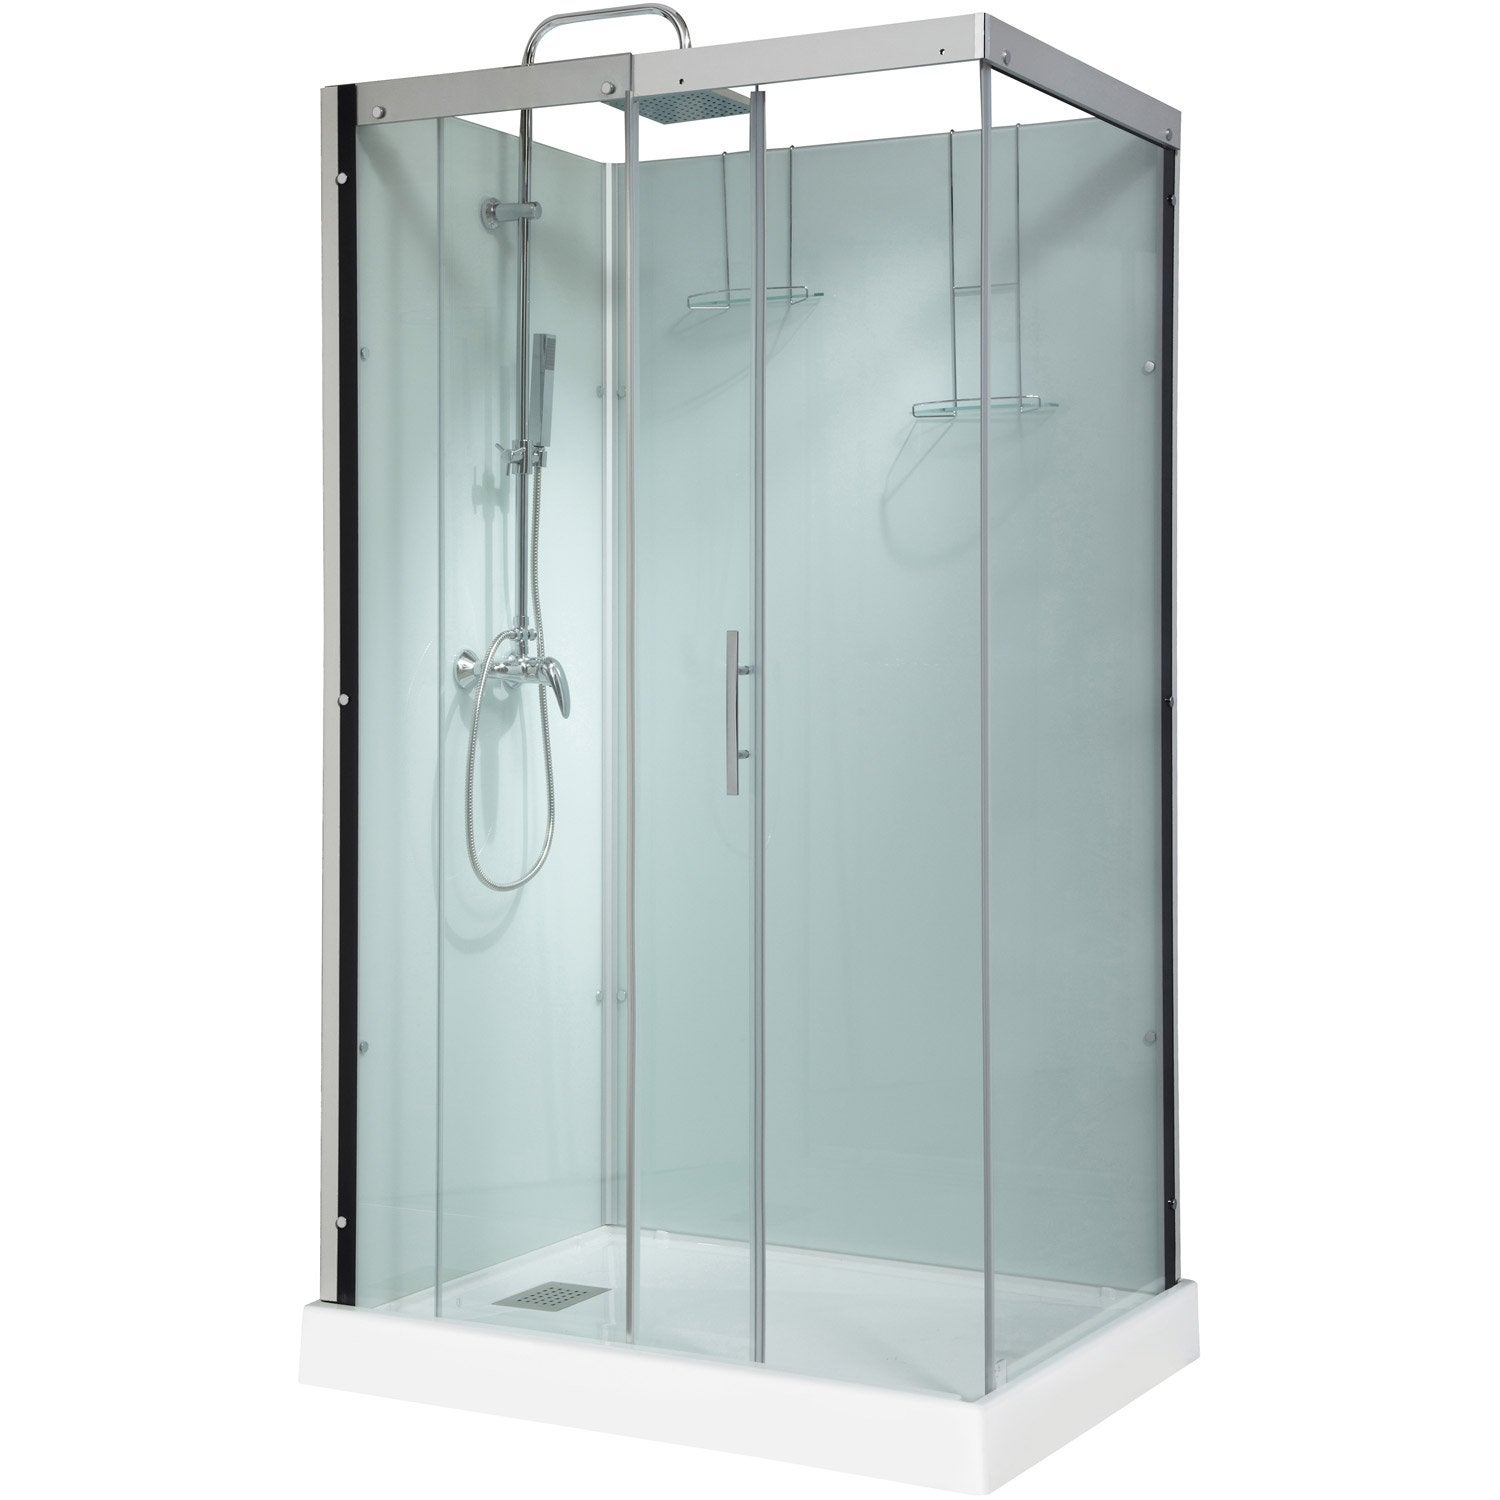 cabine de douche rectangulaire 120x90 cm thalaglass 2 mitigeur leroy merlin. Black Bedroom Furniture Sets. Home Design Ideas